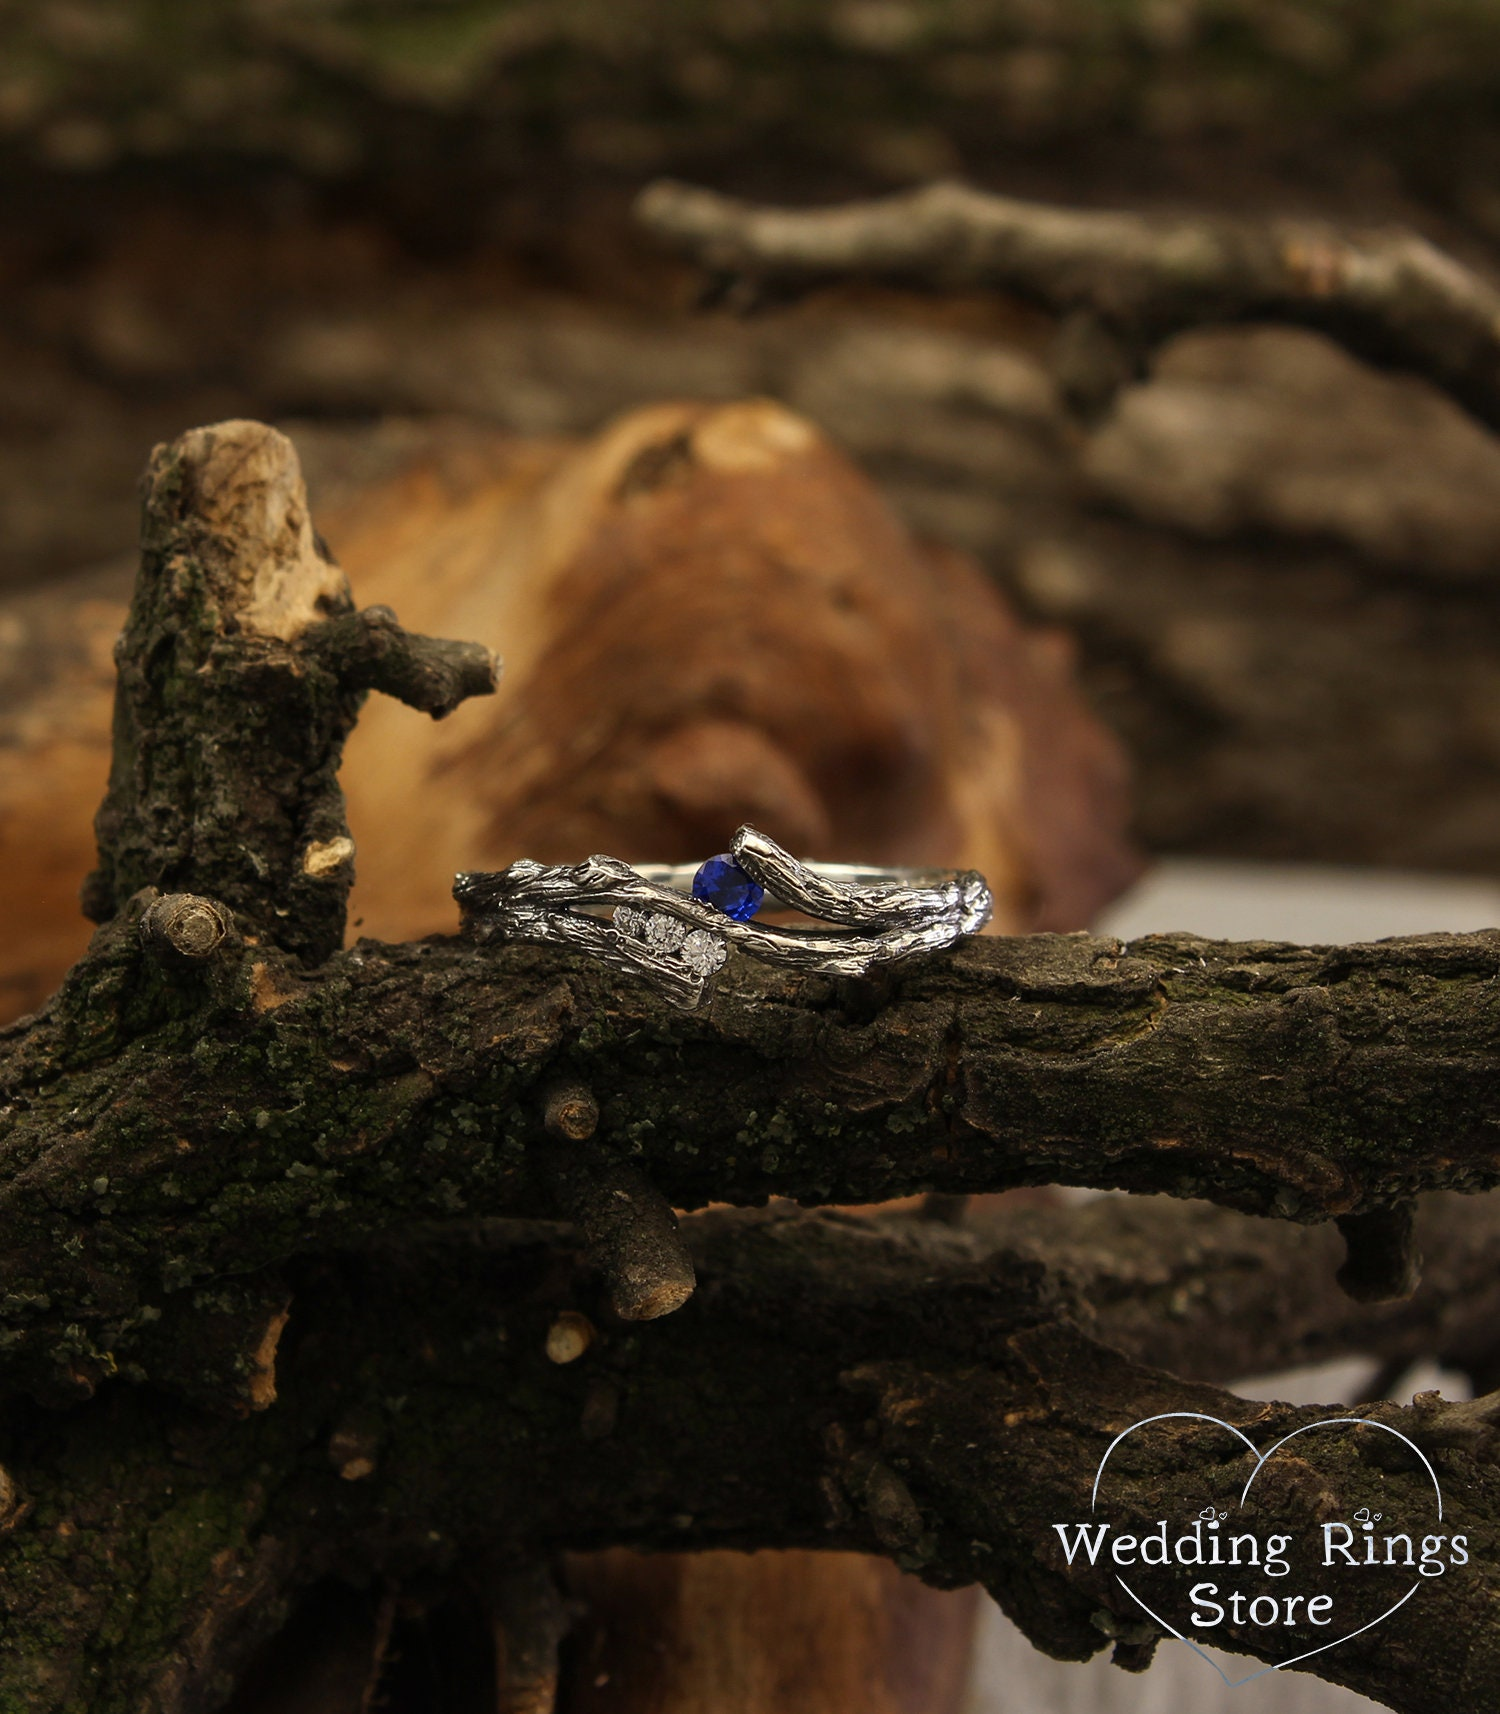 ring made of silver branches with leaves and sapphire. Gift for a woman